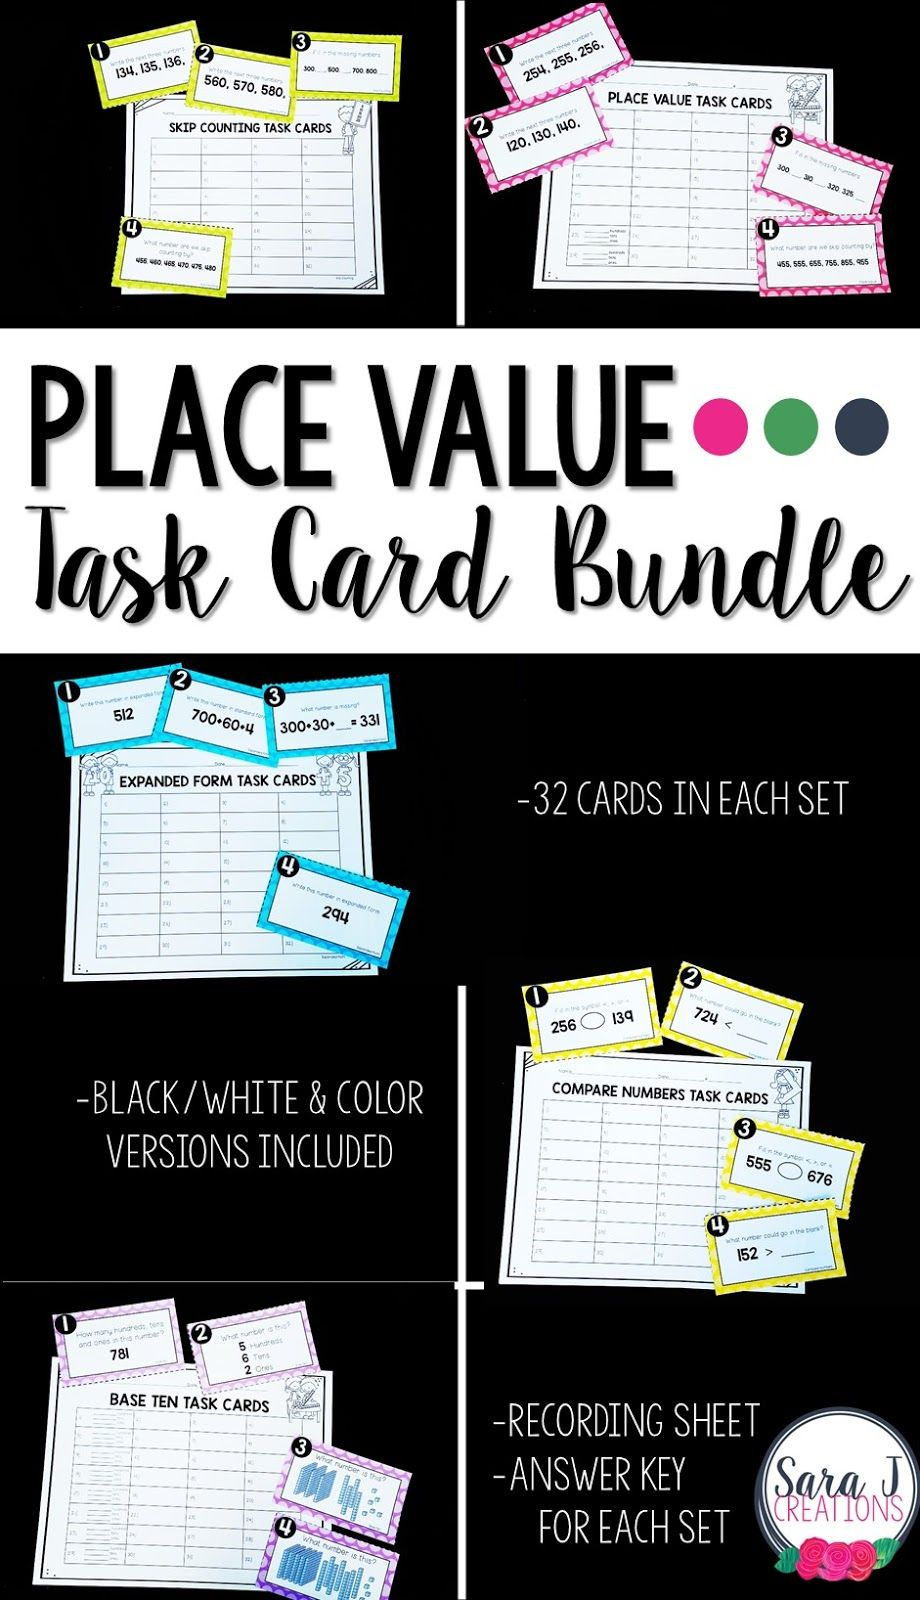 Place Value Task Card Bundle - A great place value activity for second grade.